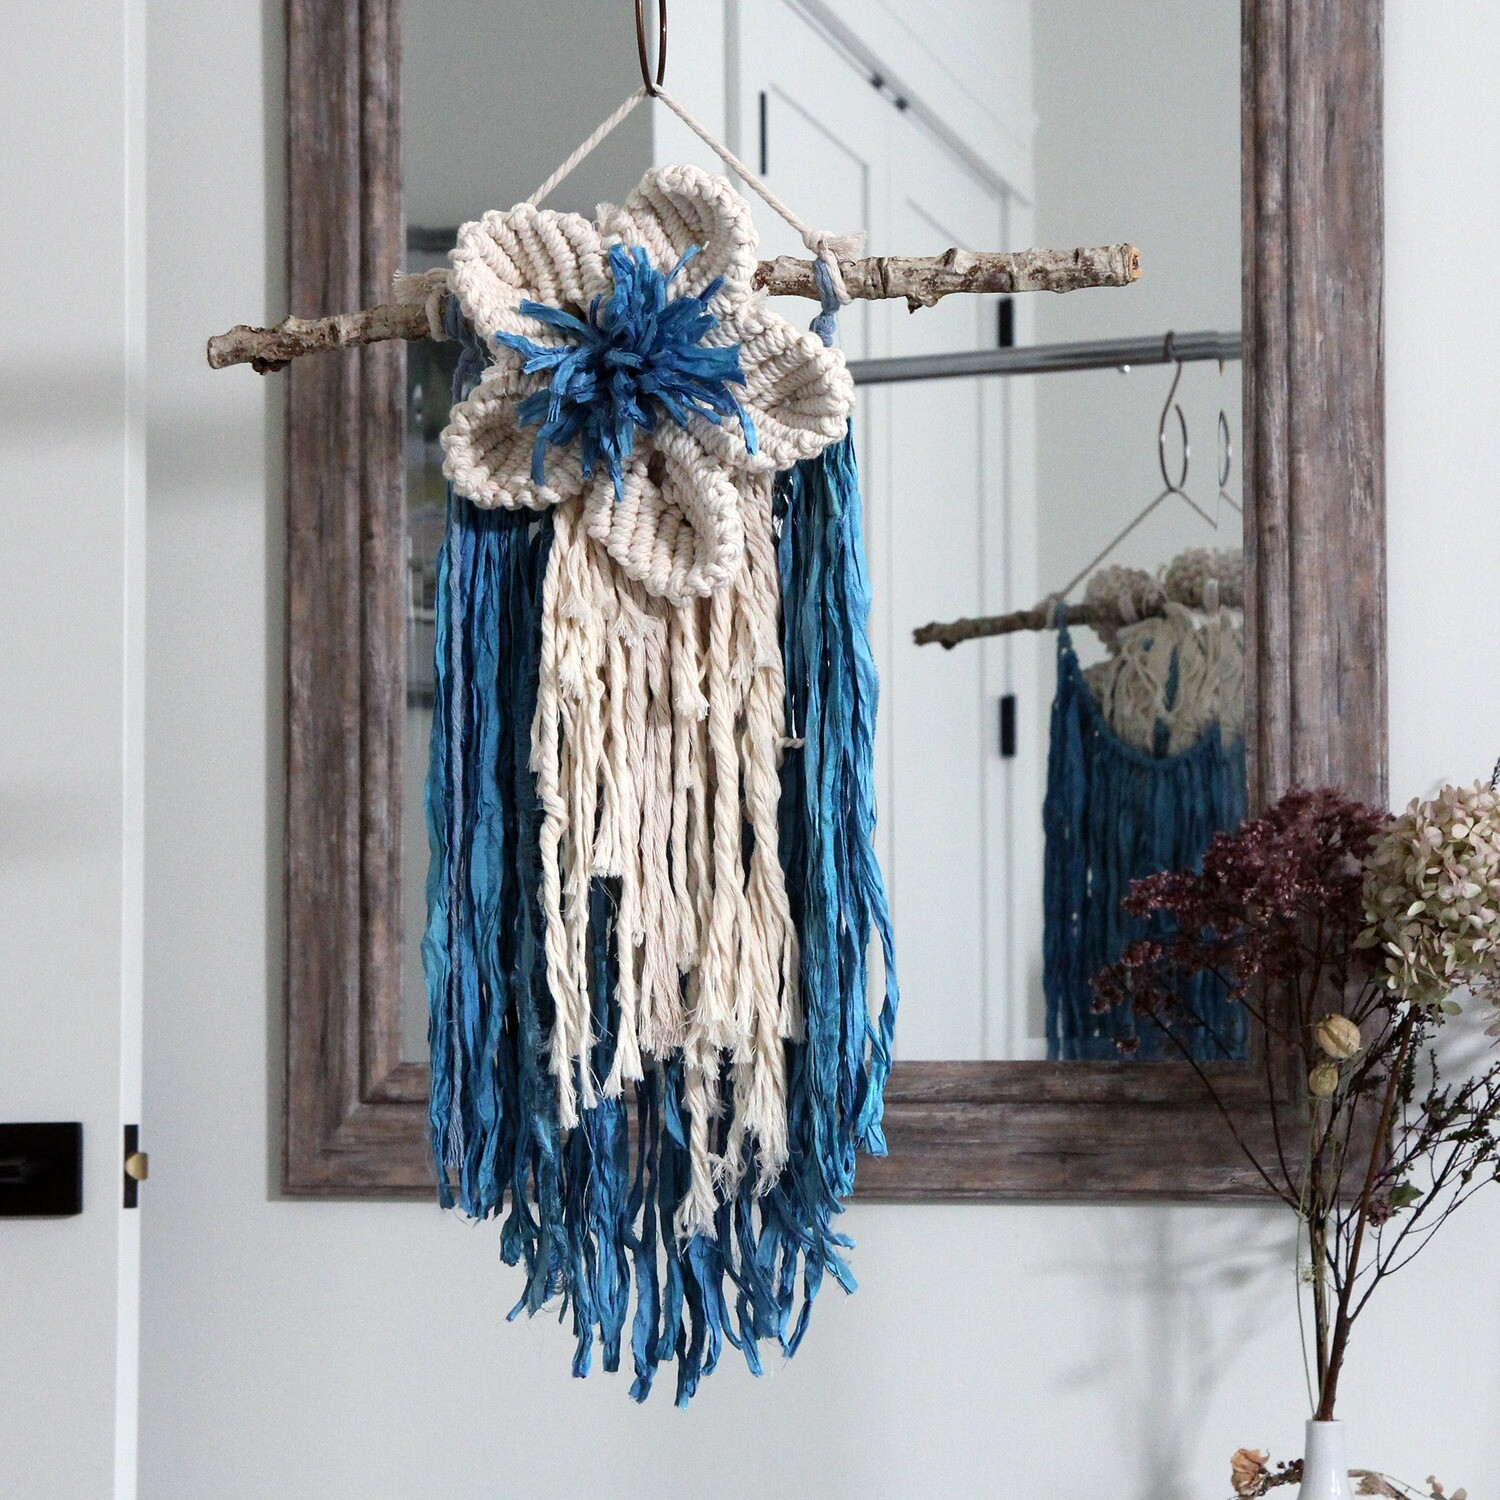 Ocean Flower Macrame Wall Hanging